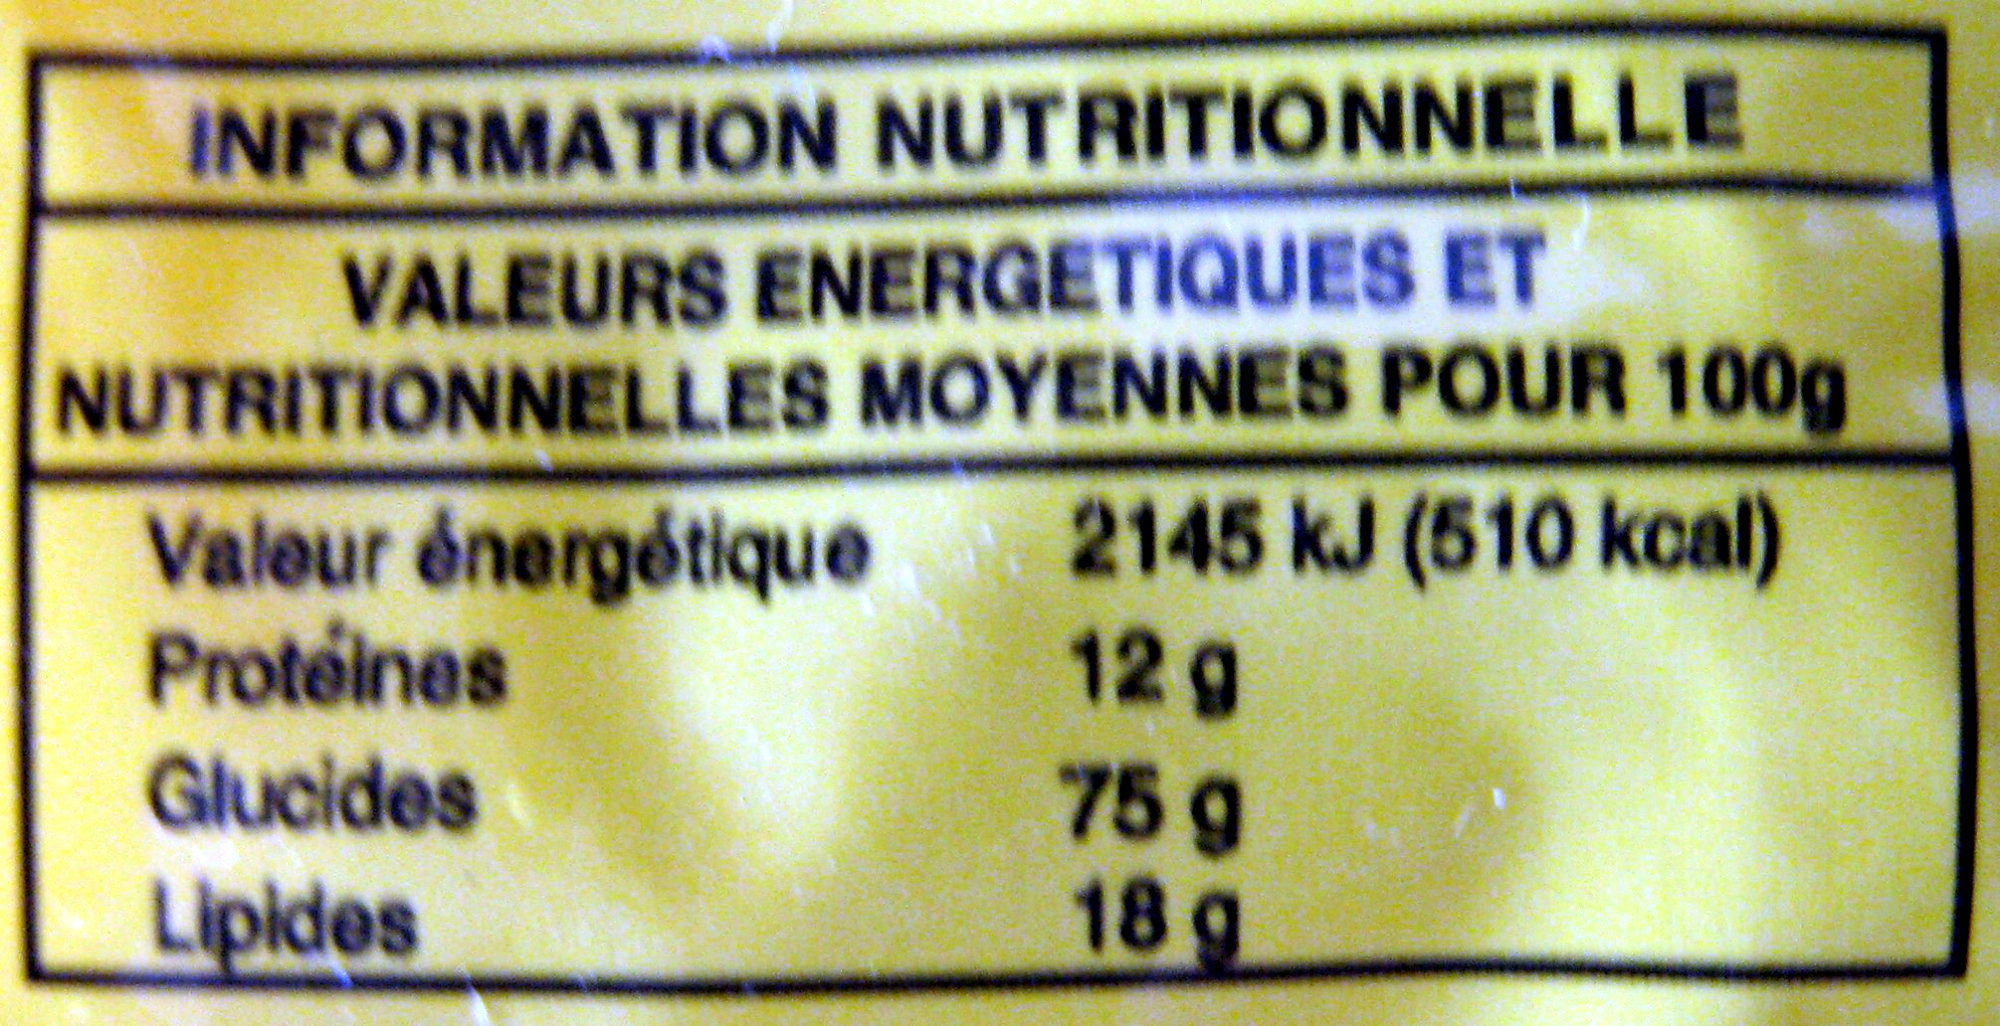 Nouilles orientales saveur curry - 85 g - Leader Price - Informations nutritionnelles - fr